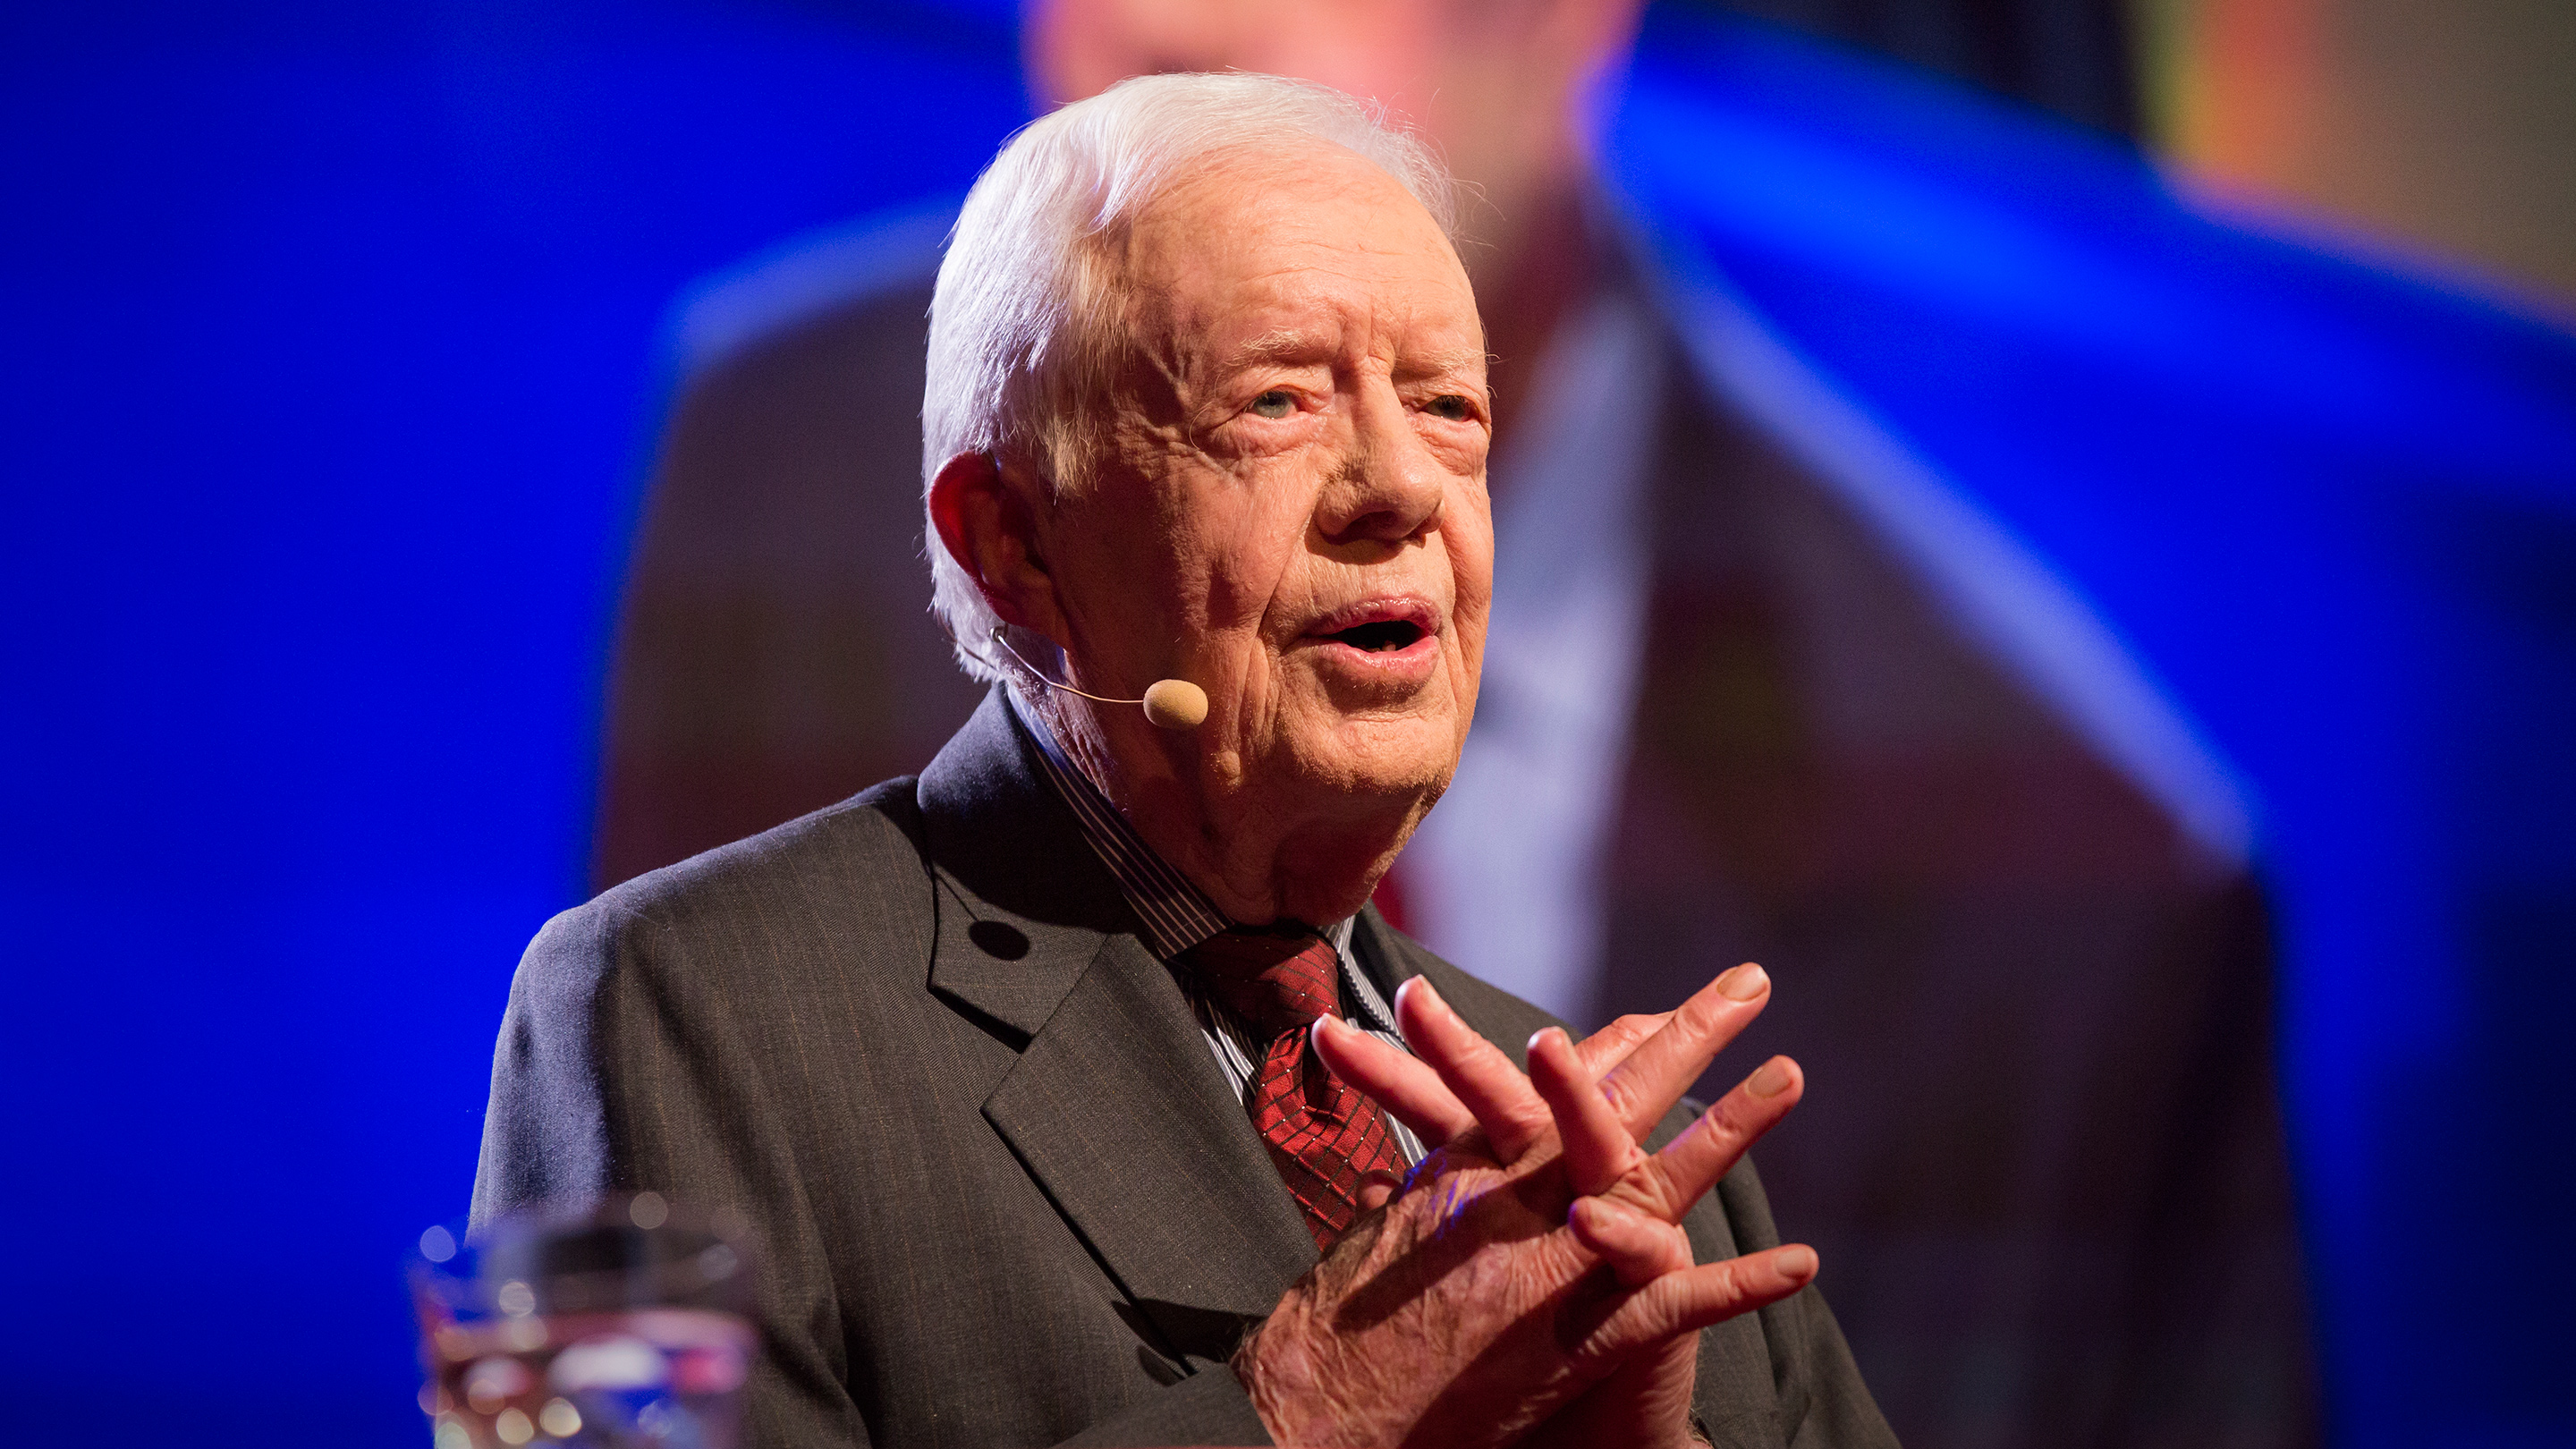 Jimmy Carter: Why I believe the mistreatment of women is the number one human rights abuse thumbnail